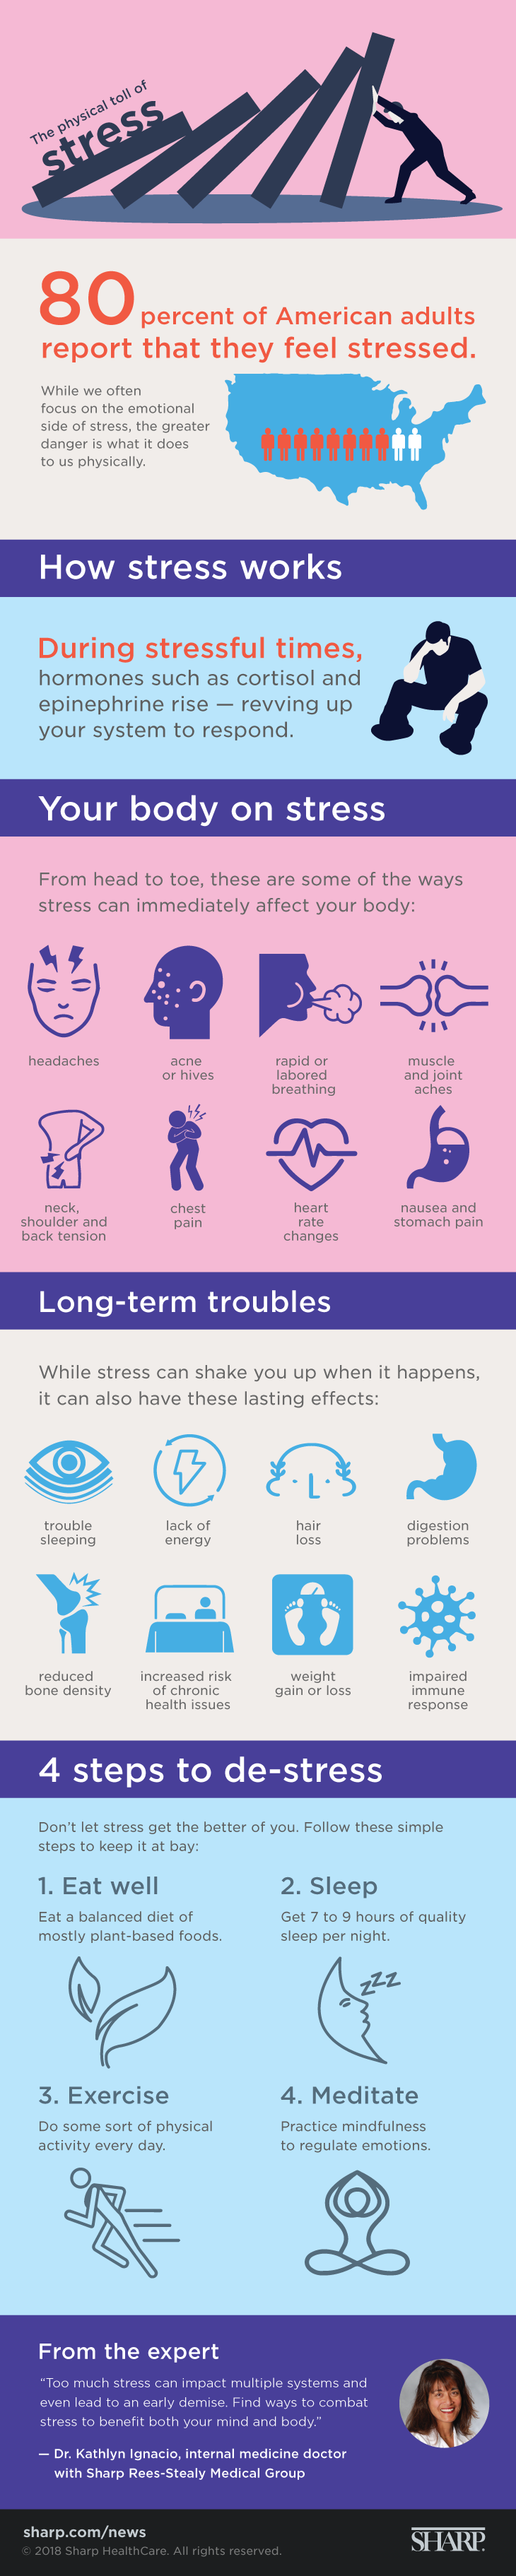 The physical toll of stress. 80 percent of American adults report that they feel stressed. While we often focus on the emotional side of stress, the greater danger is what it does to us physically. How stress works. During stressful times, hormones such as cortisol and epinephrine rise - revving up your system to respond. Your body on stress. From head to toe, these are some of the ways stress can immediately affect your body: Headaches. Acne or hives. Rapid or labored breathing. Muscle and joint aches. Neck, shoulder and back tension. Chest pain. Heart rate changes. Nausea and stomach pain. Long-term troubles. While stress can shake you up when it happens, it can also have these last effects: Trouble Sleeping. Lack of energy. Hair loss. Digestion problems. Reduced bone density. Increased risk of chronic health issues. Weight gain or loss. Impaired immune response. 4 steps to de-stress. Don't let stress get the better of you. Follow these simple steps to keep it at bay: 1. Eat well. Eat a balanced diet of mostly plant-based foods. 2. Sleep. Get 7 to 9 hours of quality sleep per night. 3. Exercise. Do some sort of physical activity every day. 4. Meditate. Practice mindfulness to regulate emotions. From the expert. Too much stress can impact multiple systems and even lead to an early demise. Find ways to combat stress to benefit both your mind and body. - Dr. Kathlyn Ignacio, internal medicine doctor with Sharp Rees-Stealy Medical Group.